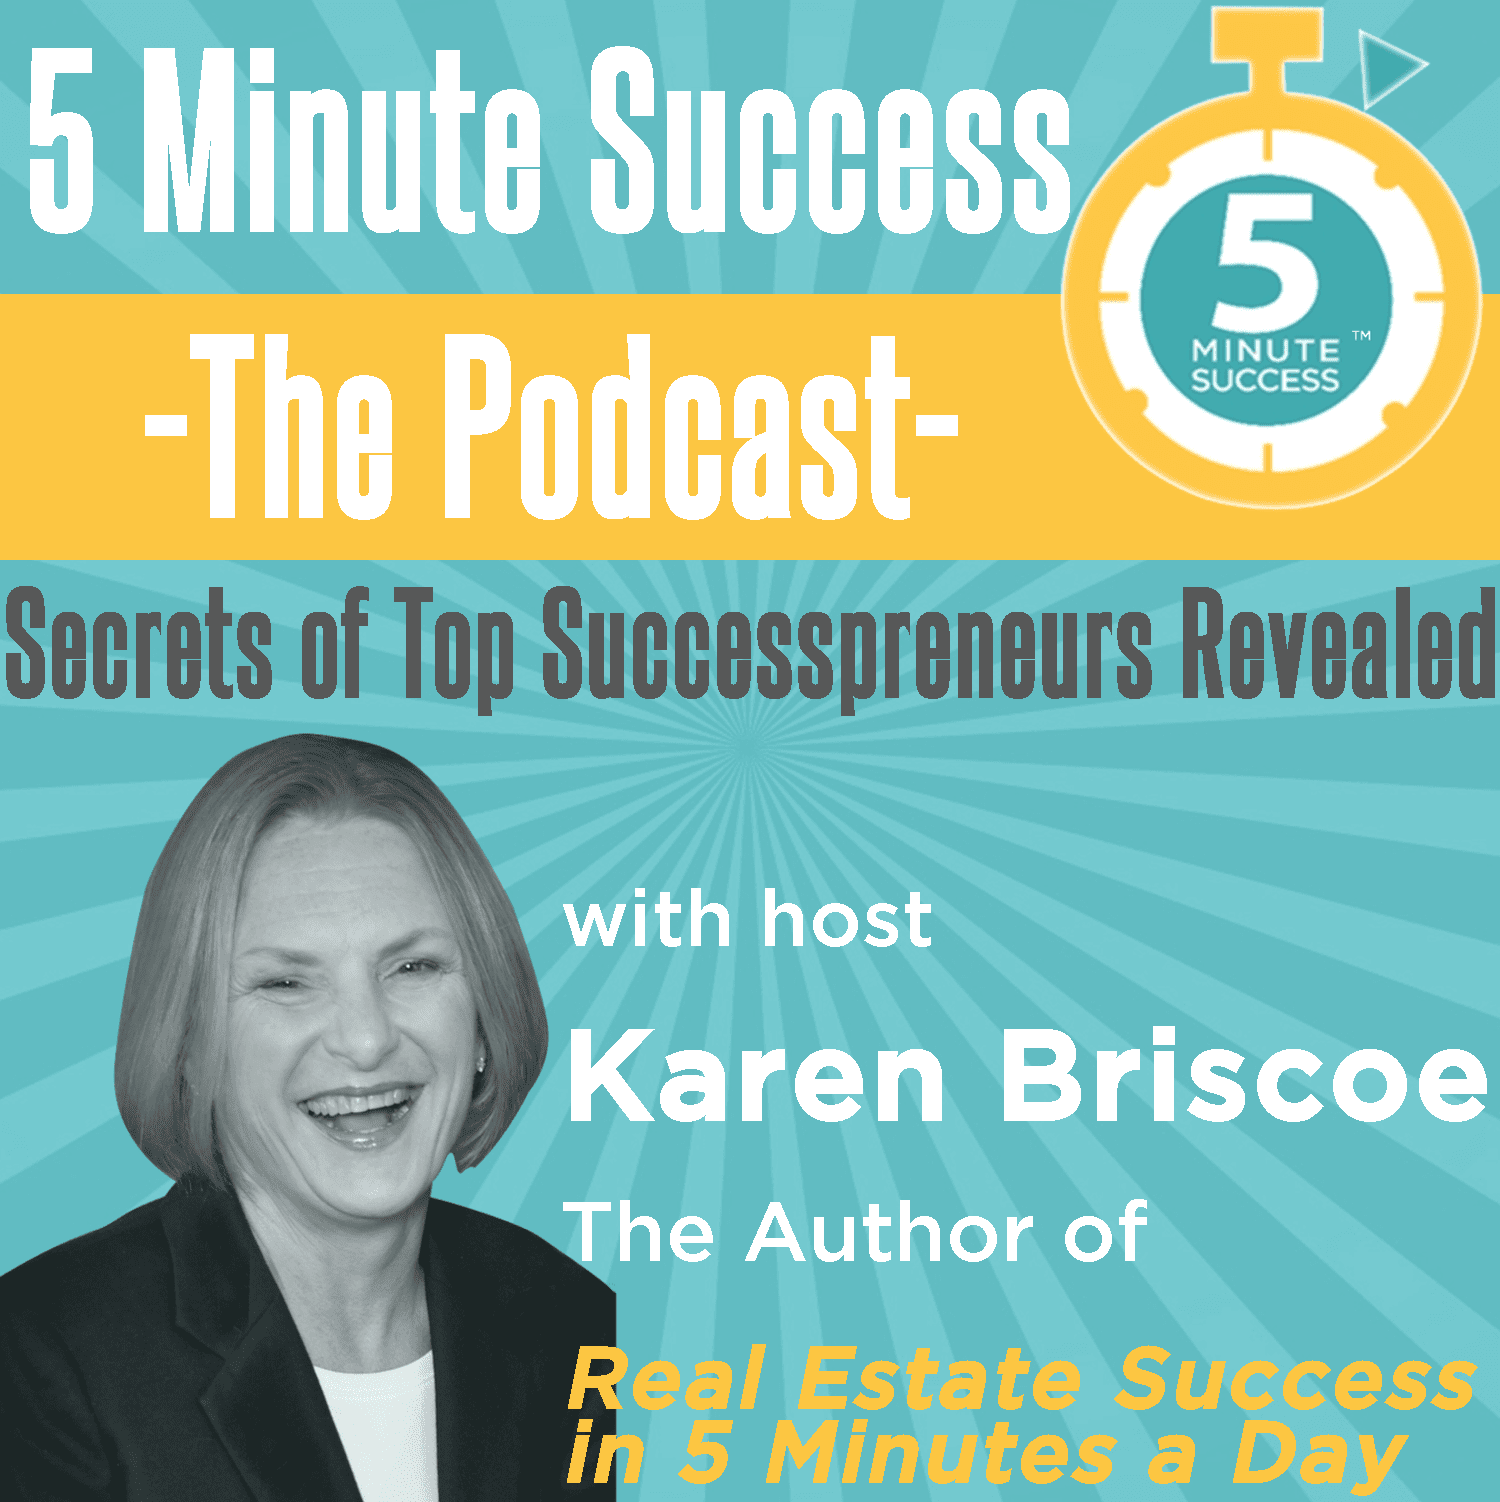 5 Minute Success the Podcast with Karen Briscoe